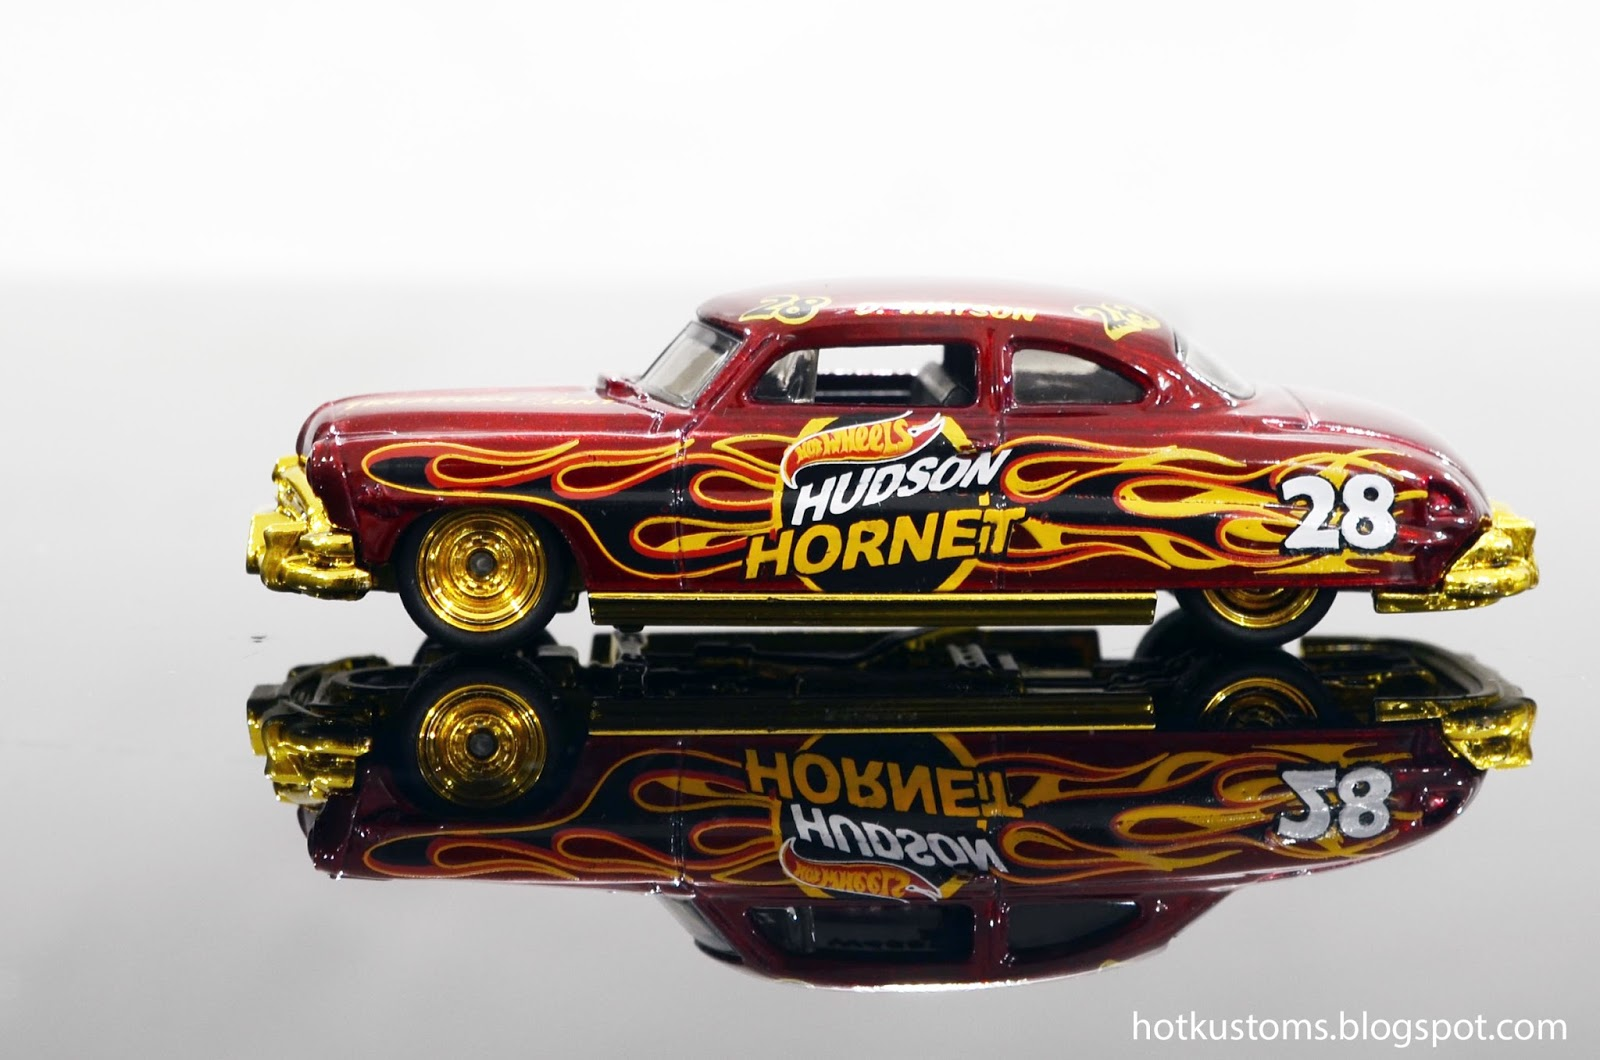 Hot kustoms mini cars 2016 39 52 hudson hornet super for 9 salon hot wheels 2016